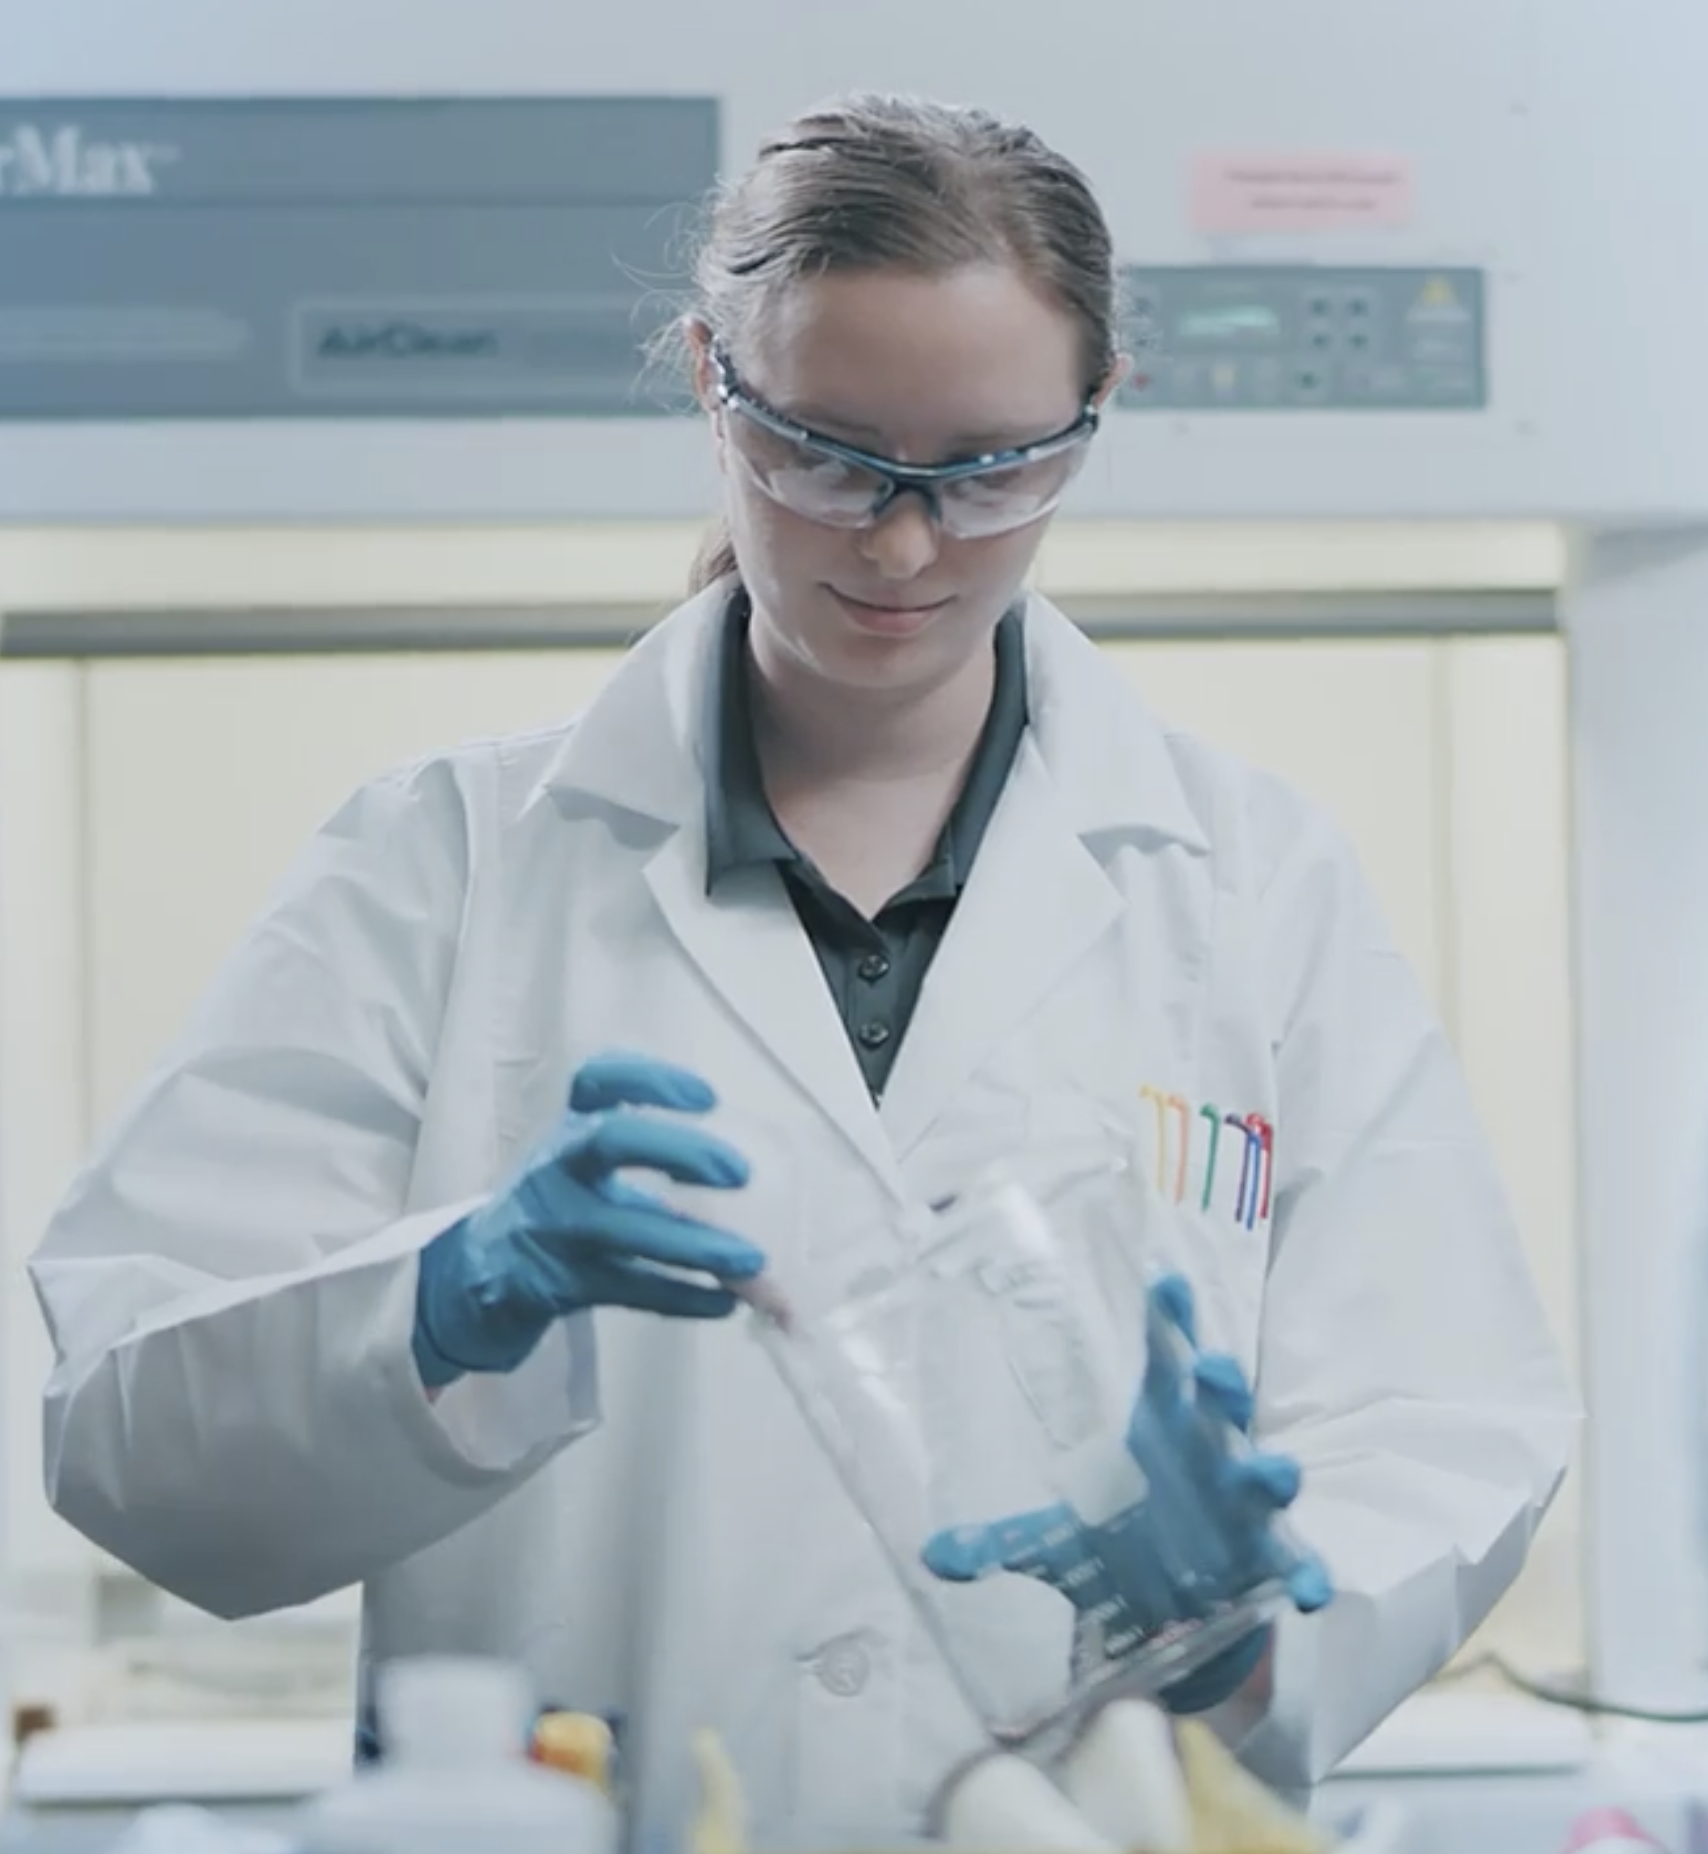 6 Reasons to Stop Preparing Your Own Working Standards in the Lab…